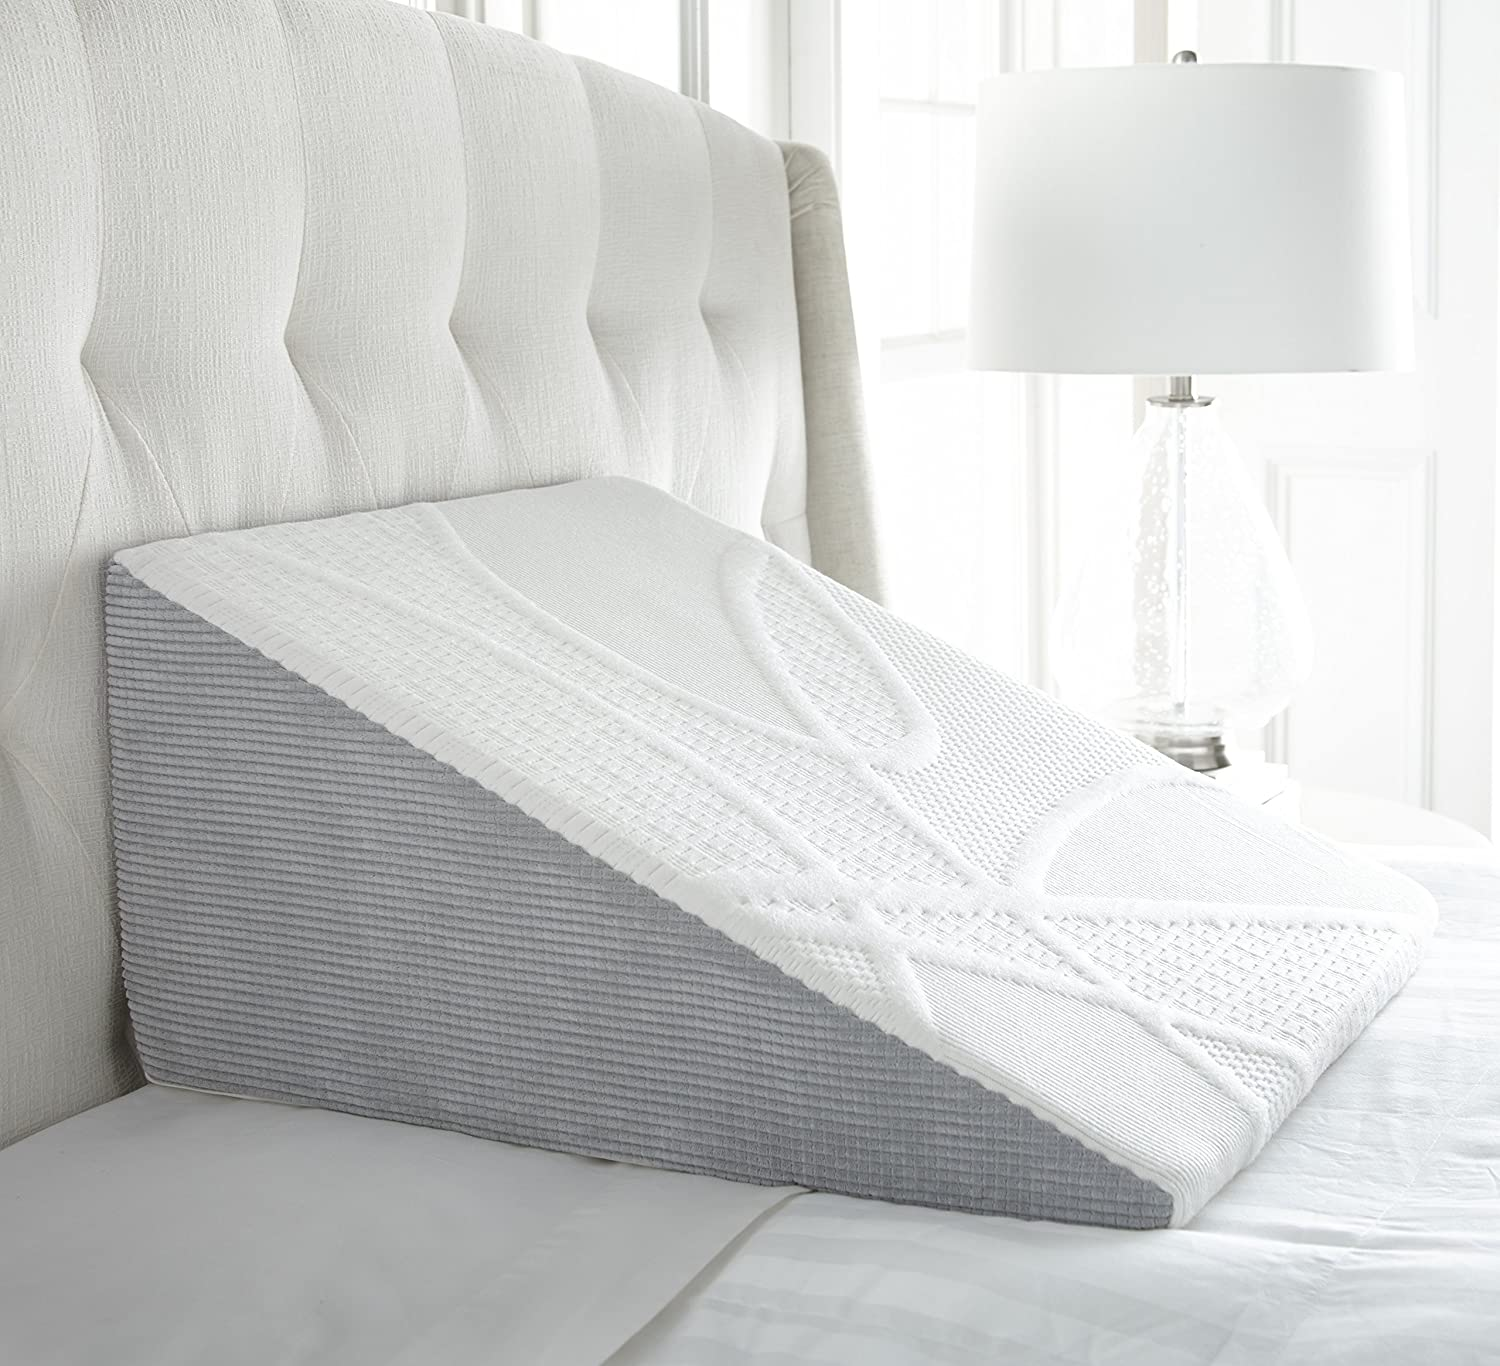 Featuring a Chenille and Knit Combo Cover and Ultra-Comfortable Memory Foam for a Superior Resting Experience PC-WEDGE7 Perfect Cloud Plush 7-Inch Tall Bed Wedge Pillow